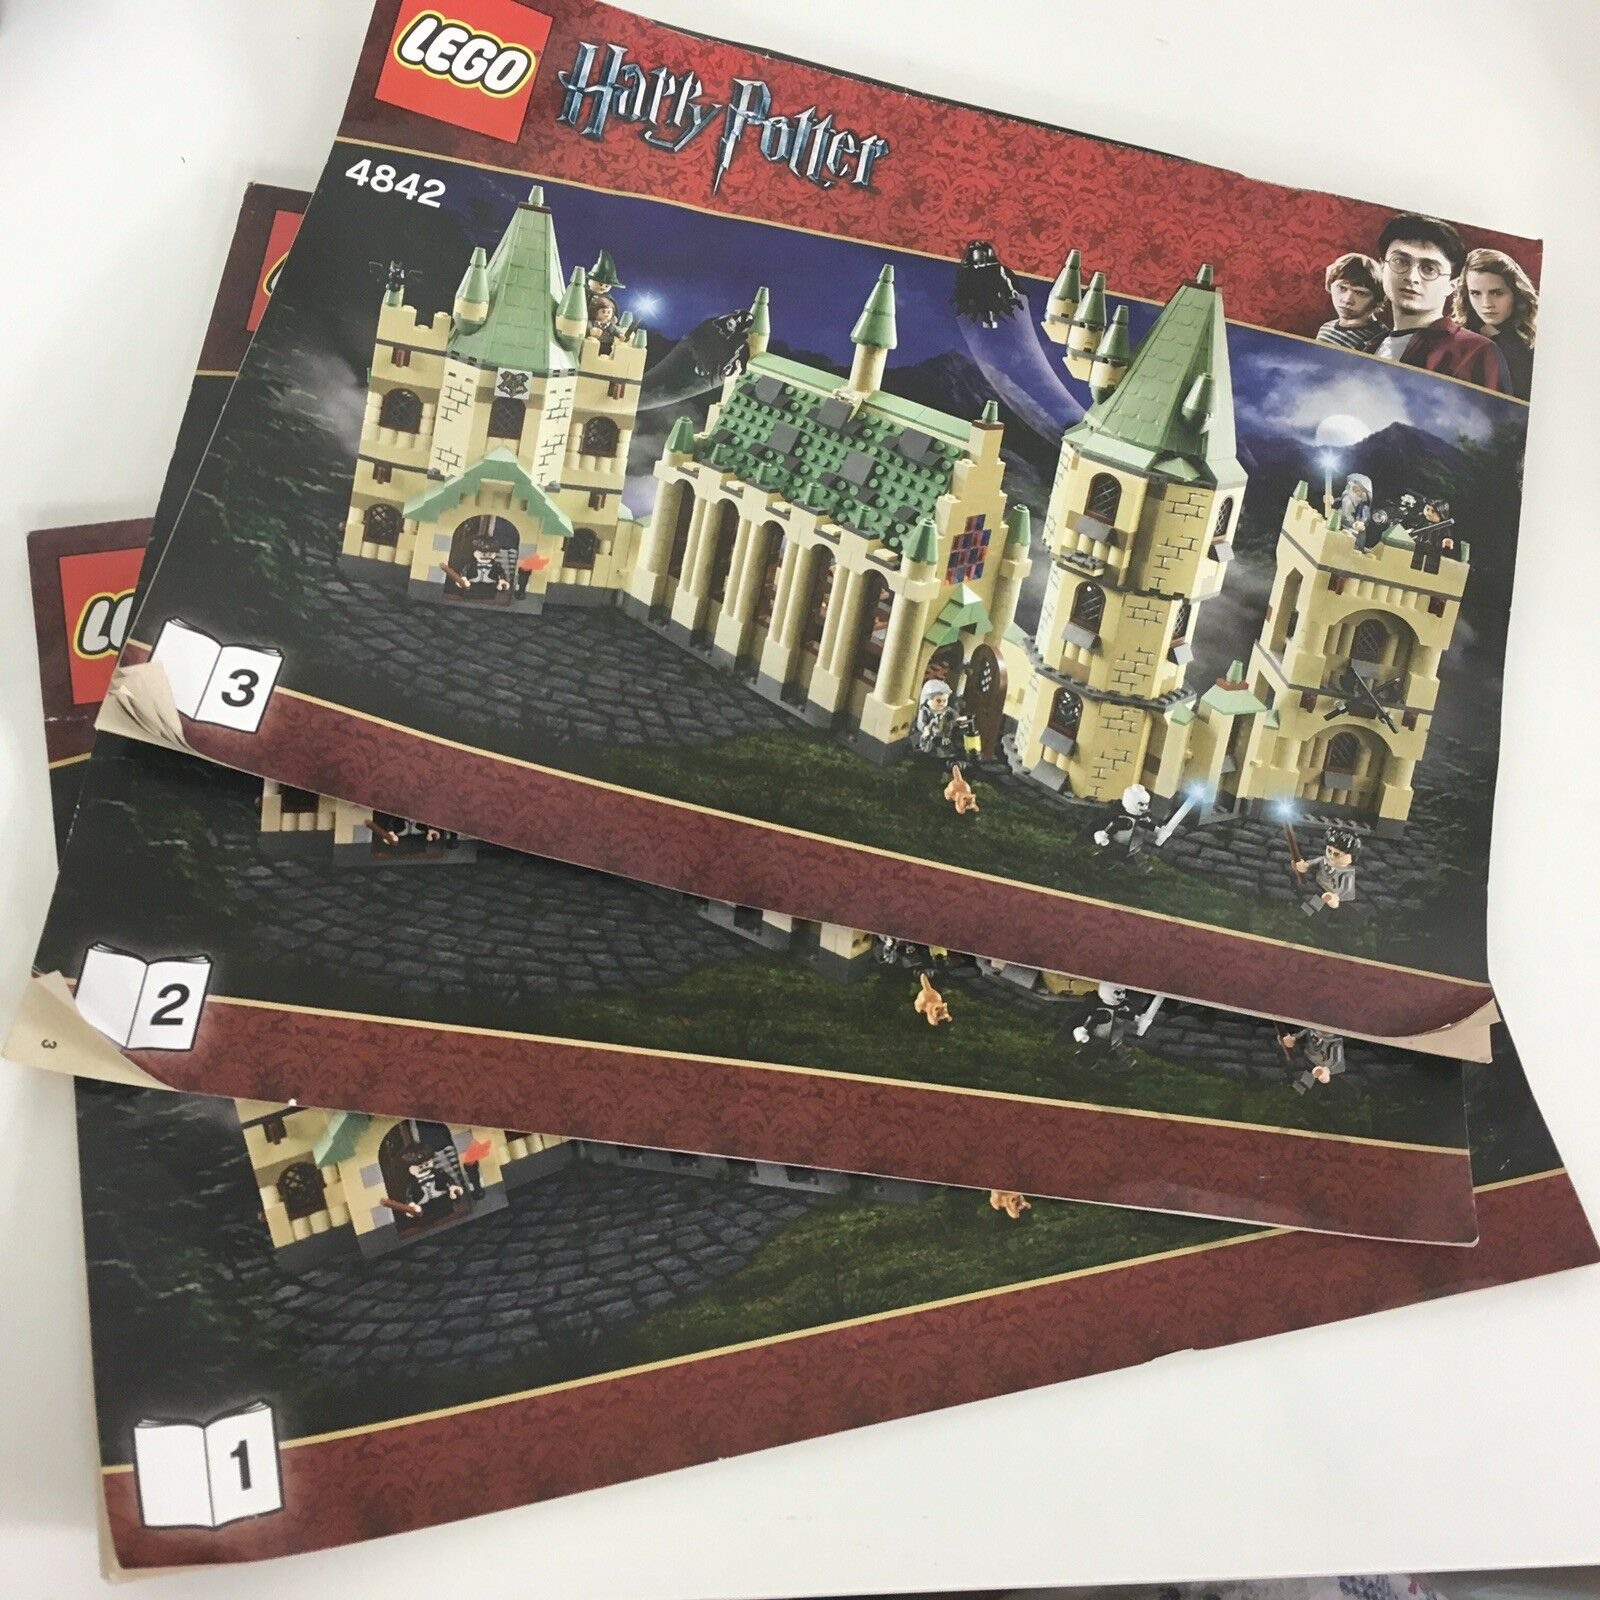 LEGO Harry Potter Hogwarts castle 4842 4842 4842 Manual Instructions Only books 1 2 3 4941e9